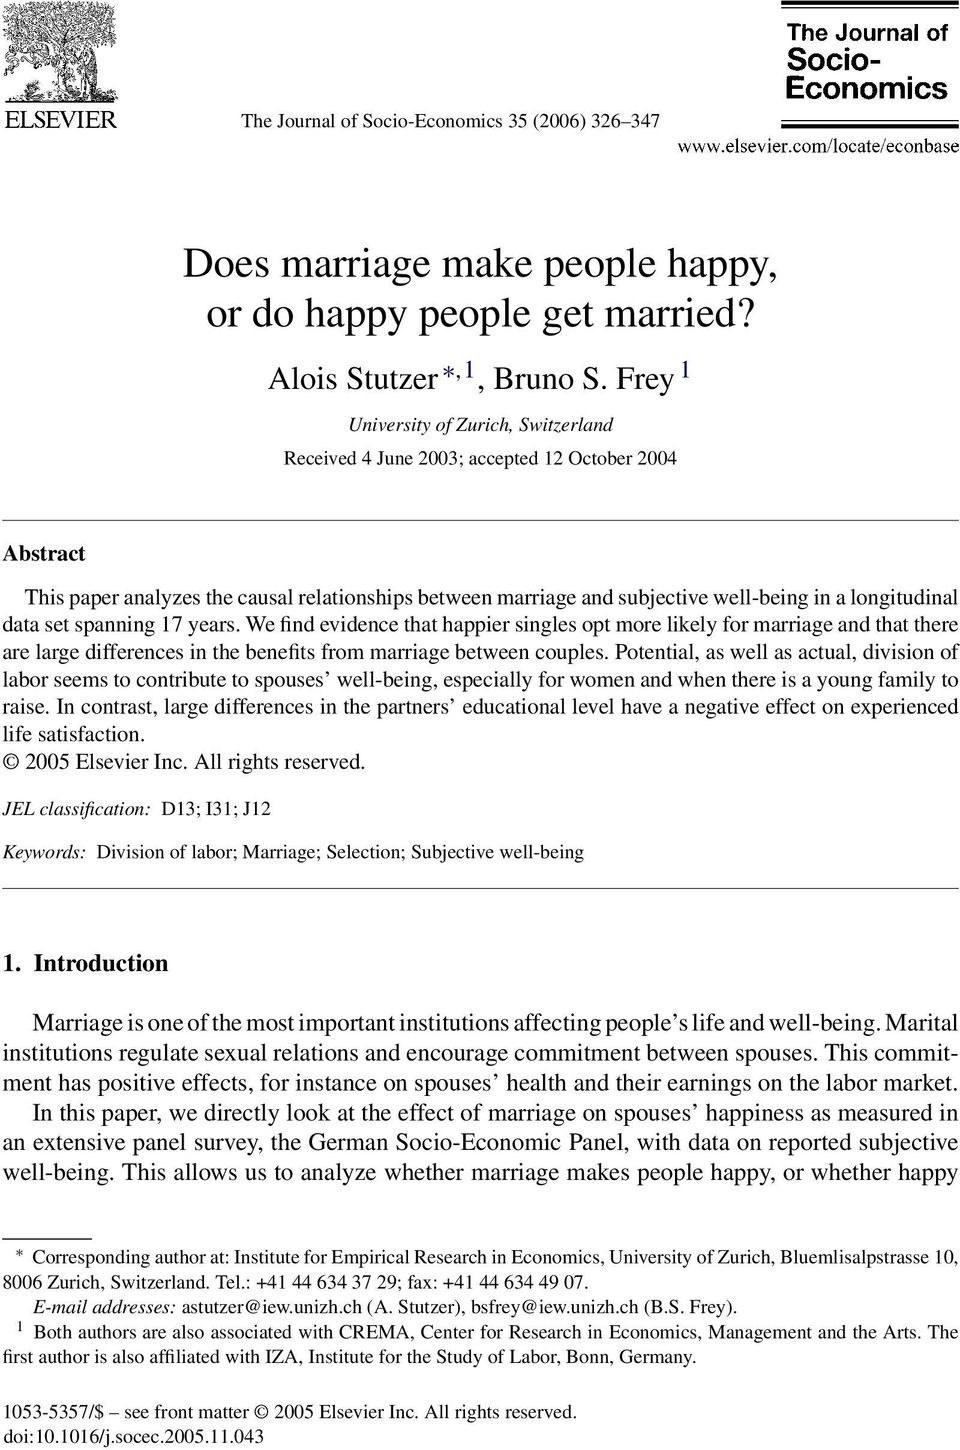 longitudinal data set spanning 17 years. We find evidence that happier singles opt more likely for marriage and that there are large differences in the benefits from marriage between couples.